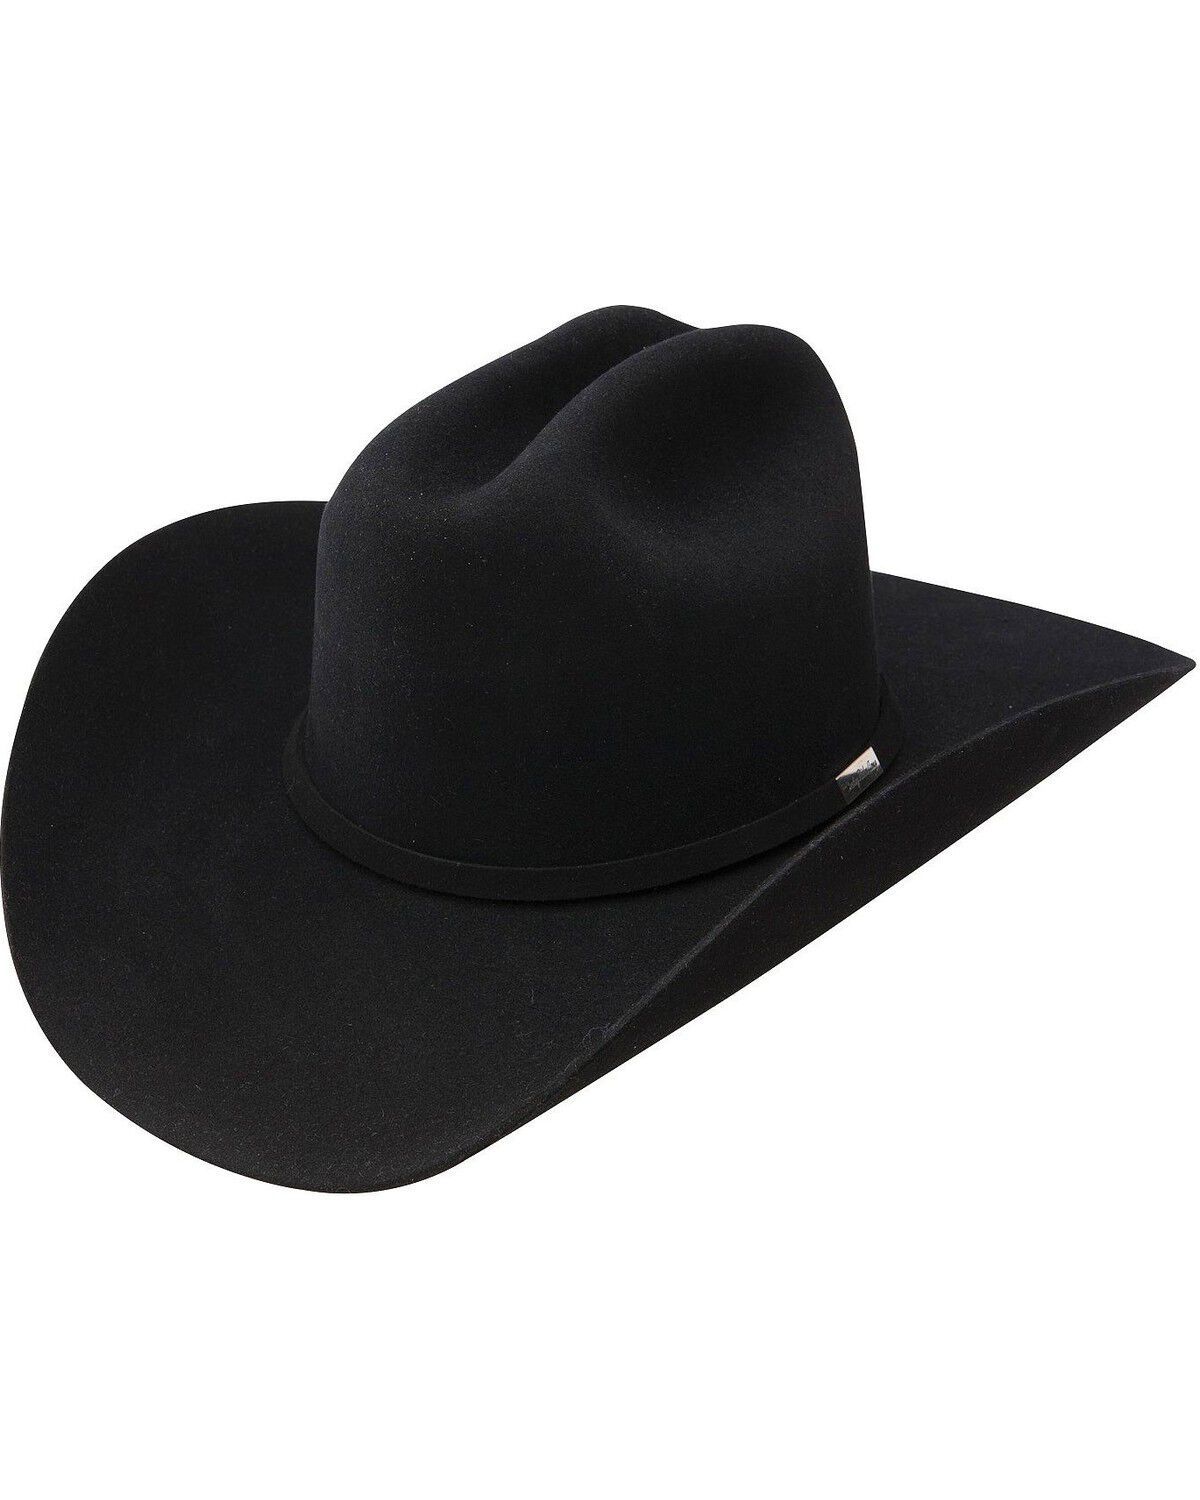 Men s Felt Wool Western Hats 74e5f43bb8a4